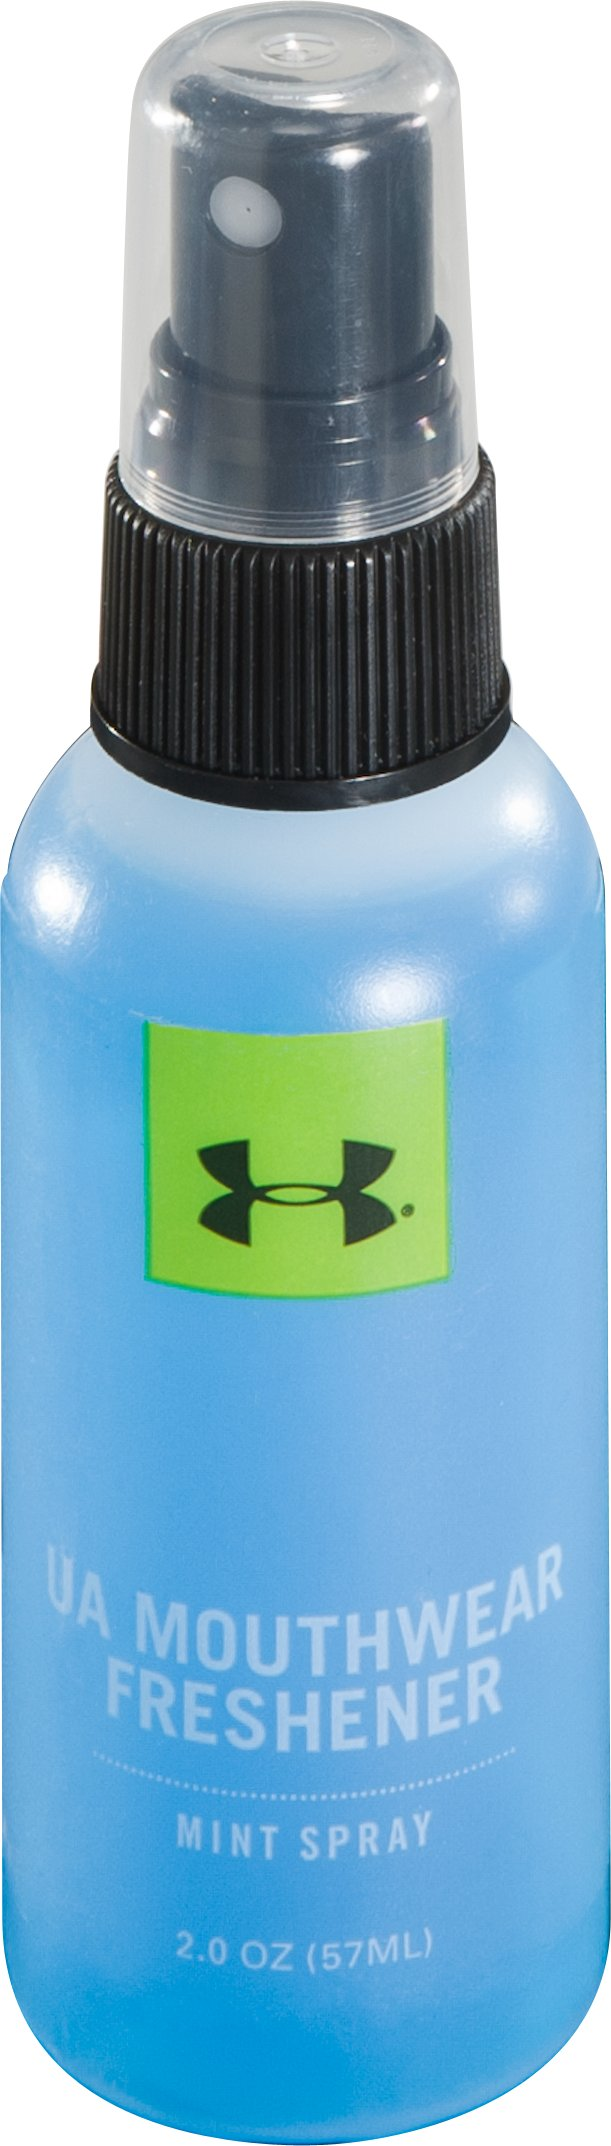 Under Armour® Anti-Microbial Mouthwear Freshener, Marine